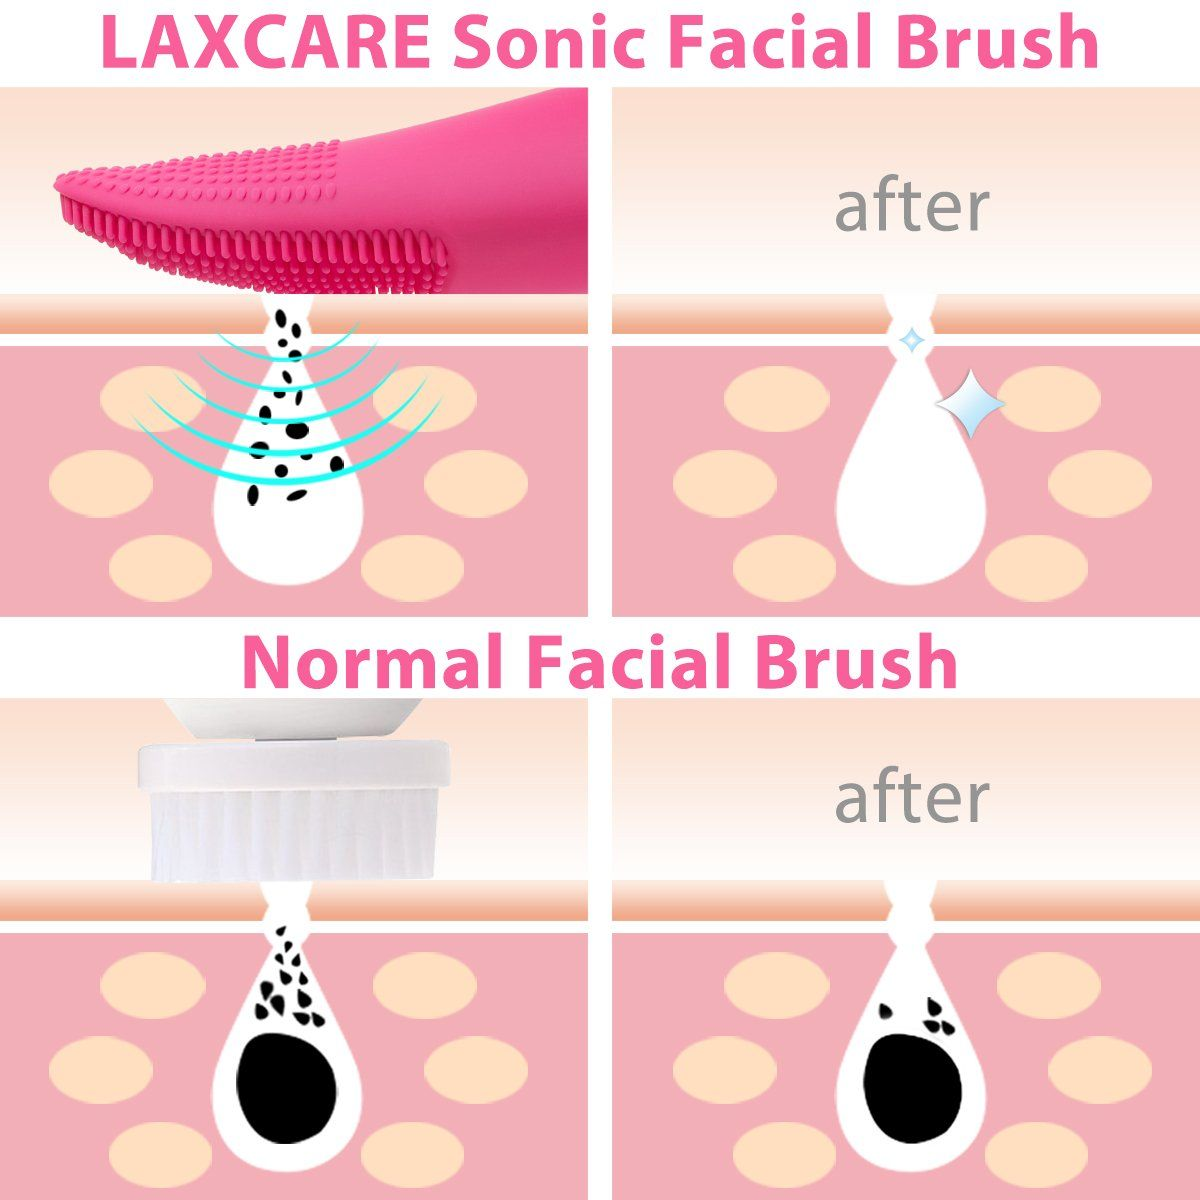 Sonic Face Brush Laxcare Waterproof Facial Cleansing Brush With 7 Speeds Thermal Spa For Gentle Exfolia Facial Cleansing Brush Cleansing Brush Facial Cleansing